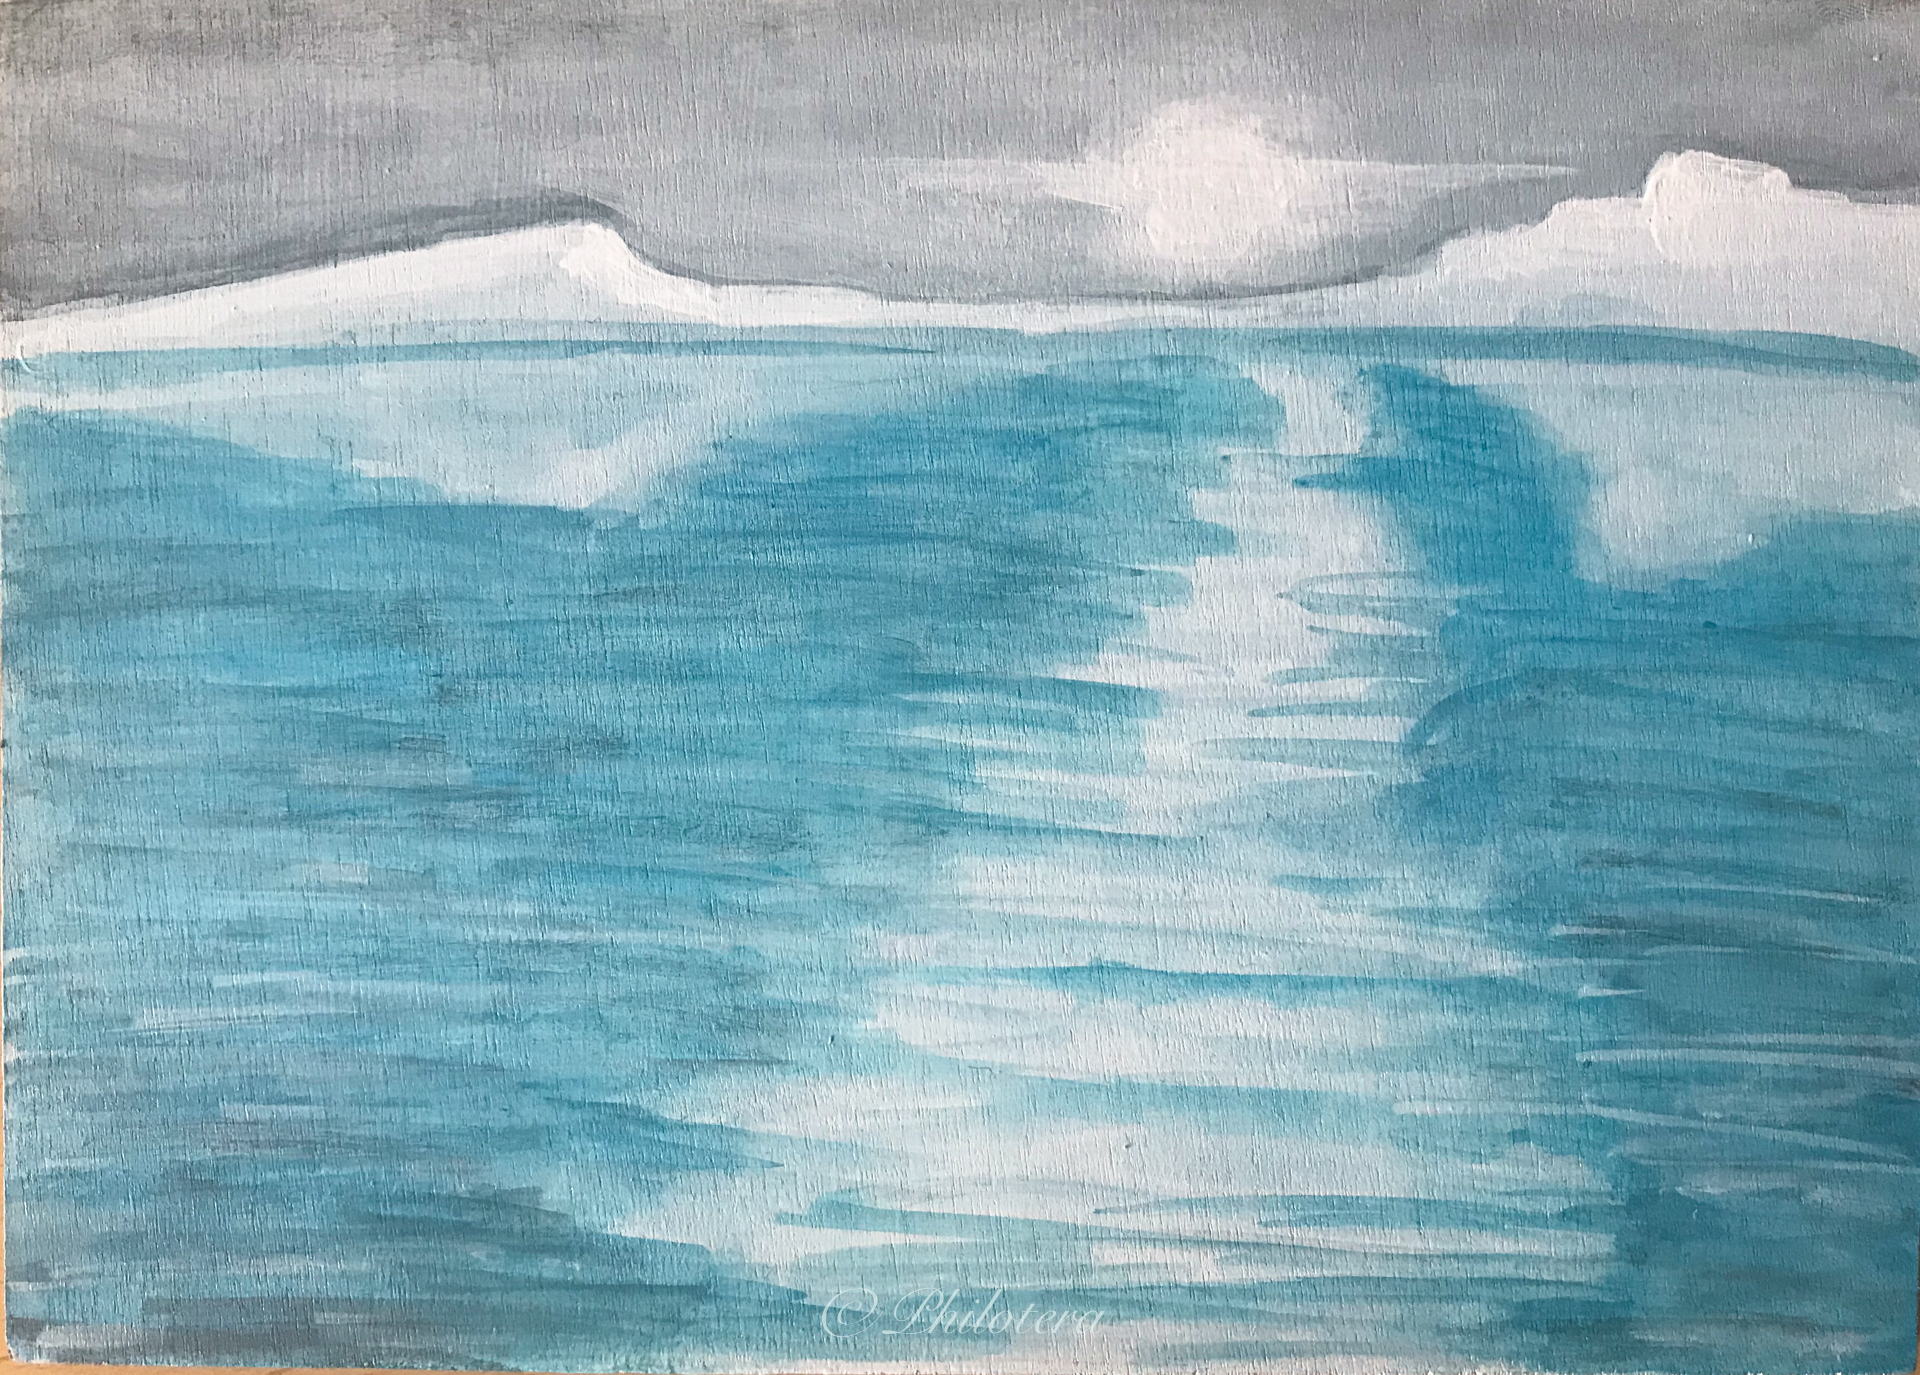 Painted Sketch of icebergs and reflections